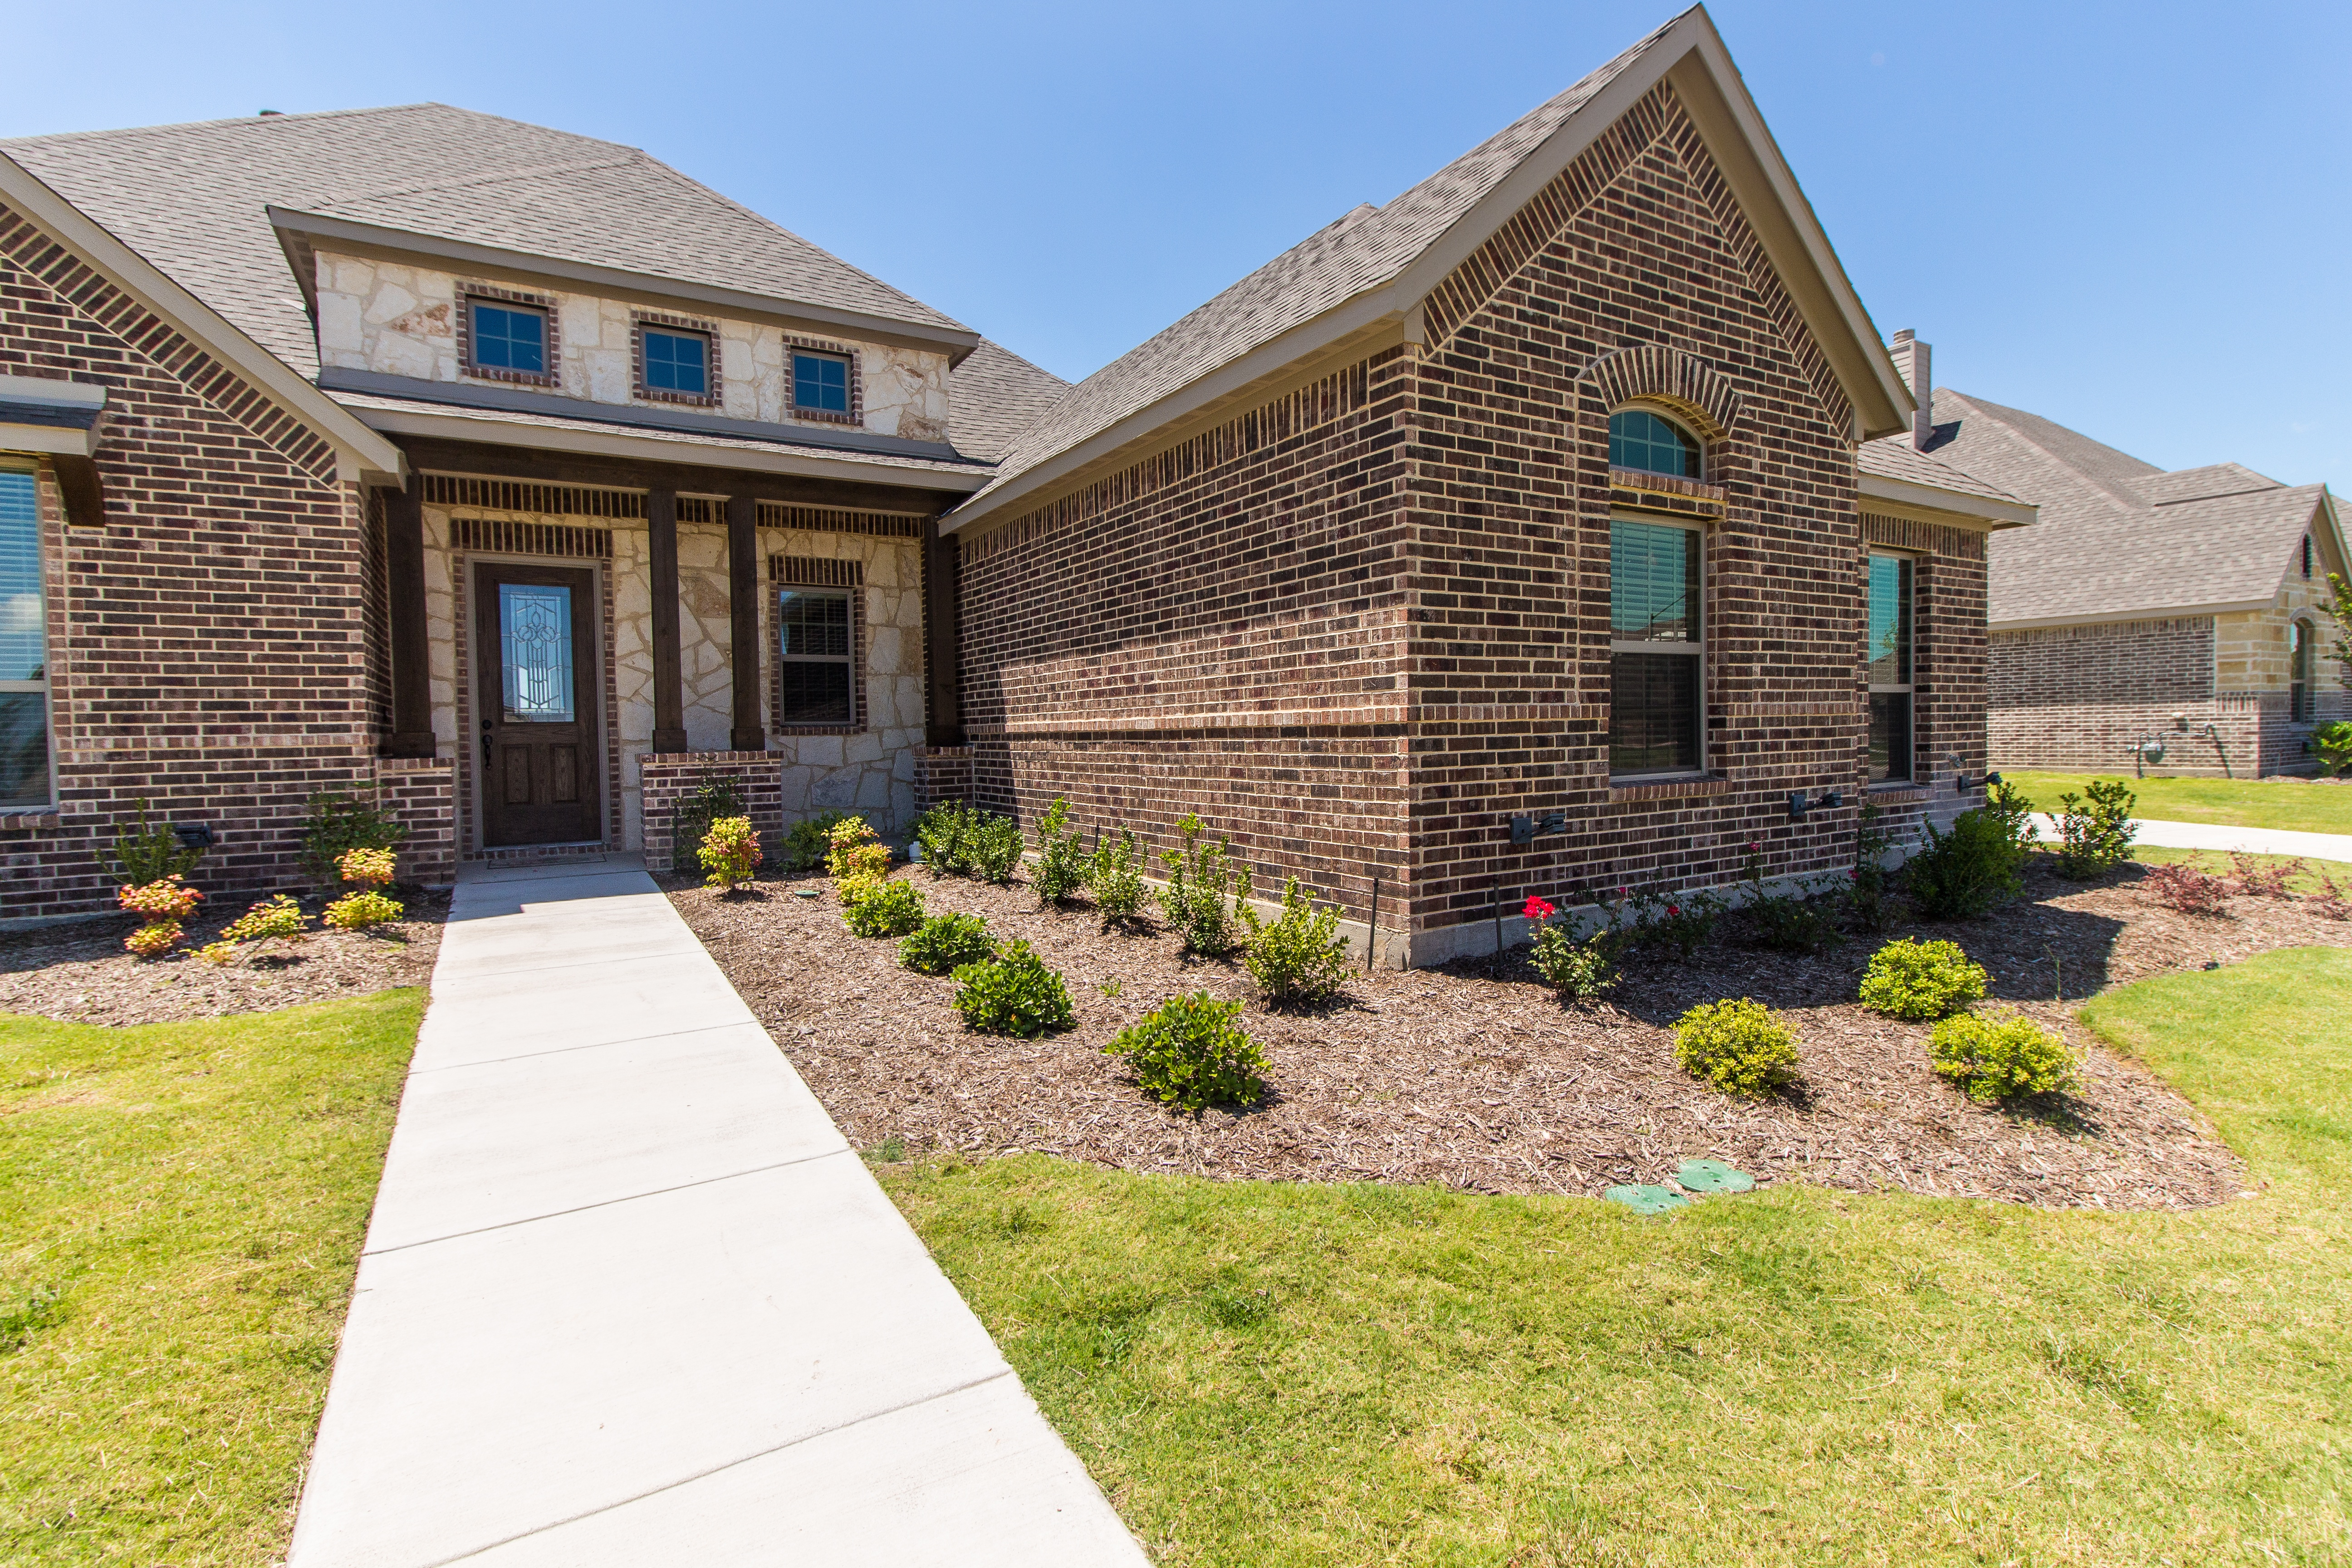 new homes for sale waxahachie sandstone ranch large lots